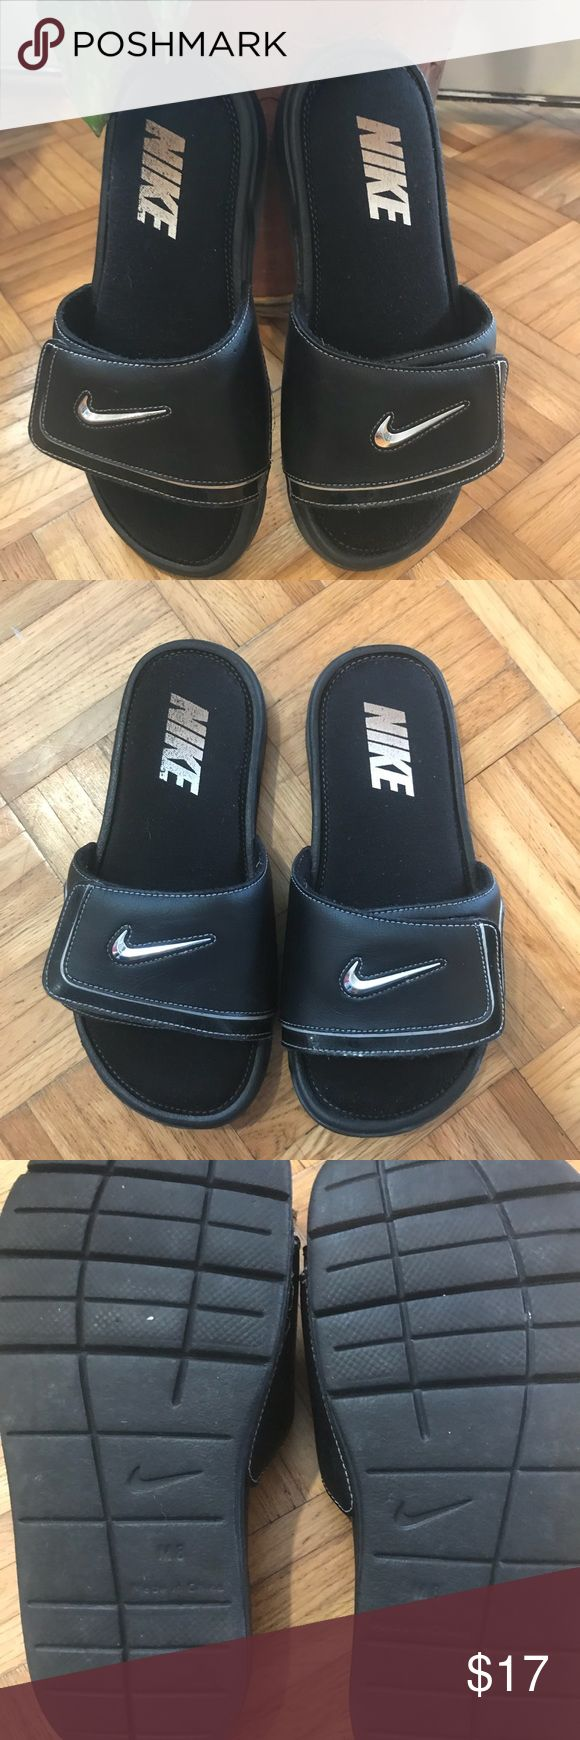 Nike Men's Slippers Size 8M Black with silver logo .. no rip, tears, etc. just normal signs of wear .. very gently used Nike Shoes Sandals & Flip-Flops